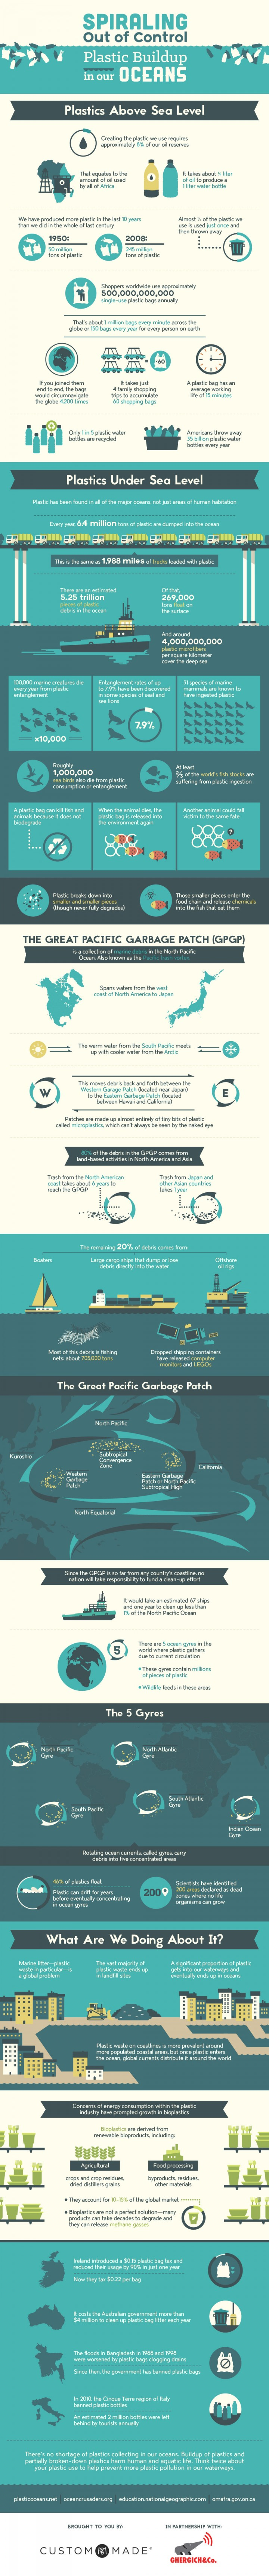 Spiraling Out of Control: Plastic Buildup in Our Oceans